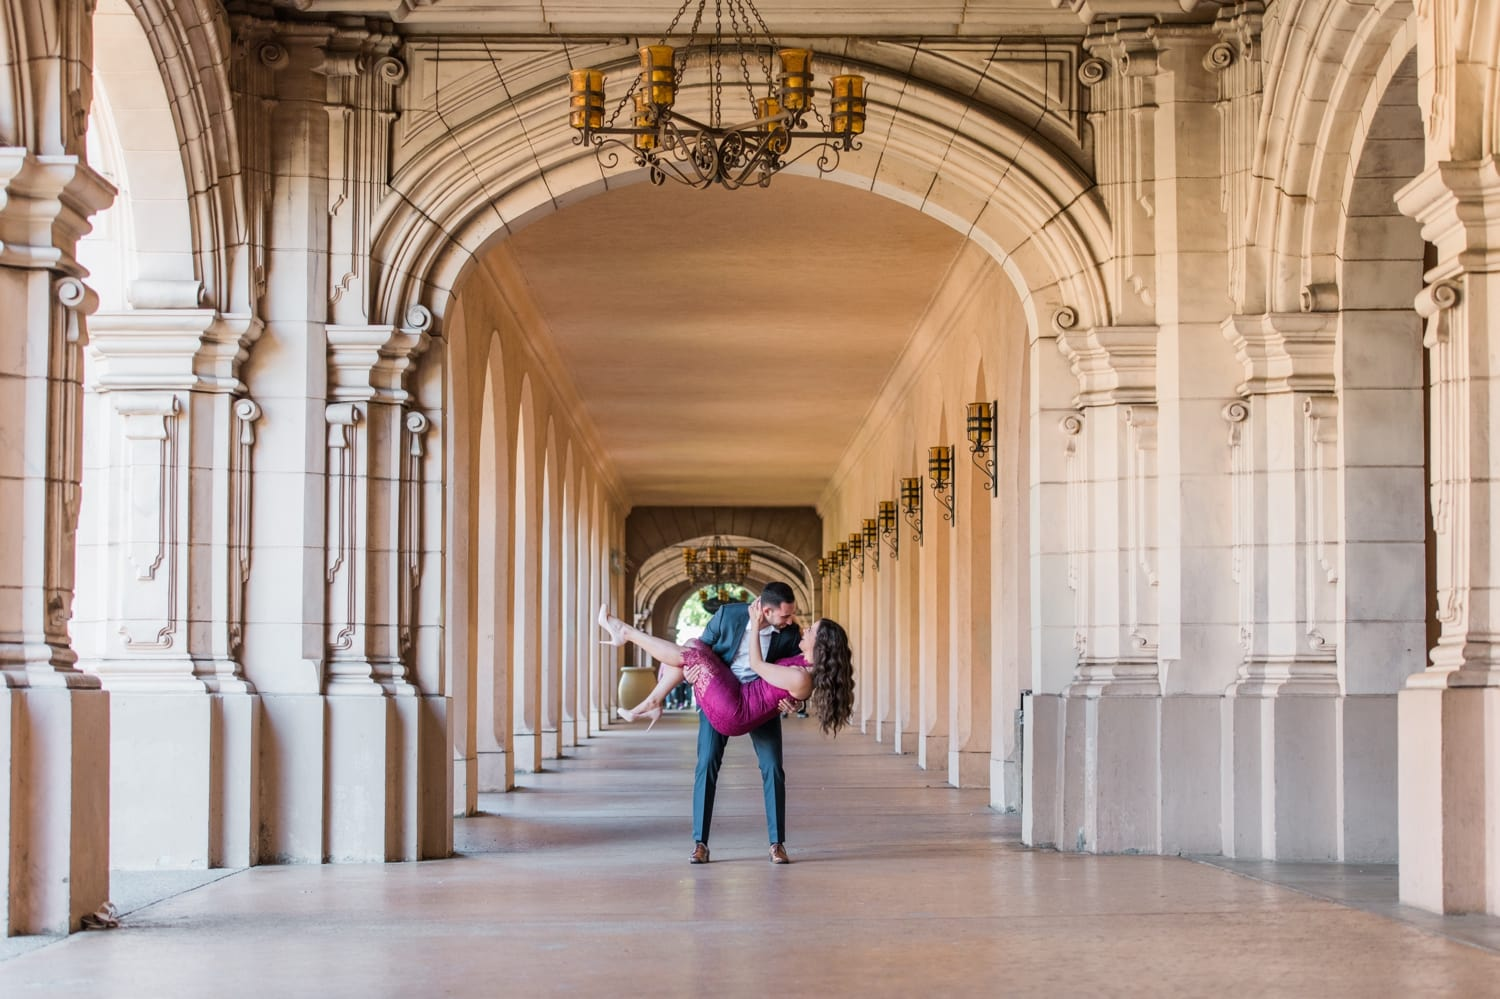 Groom lifting his bride and dipping her at Balboa Park.